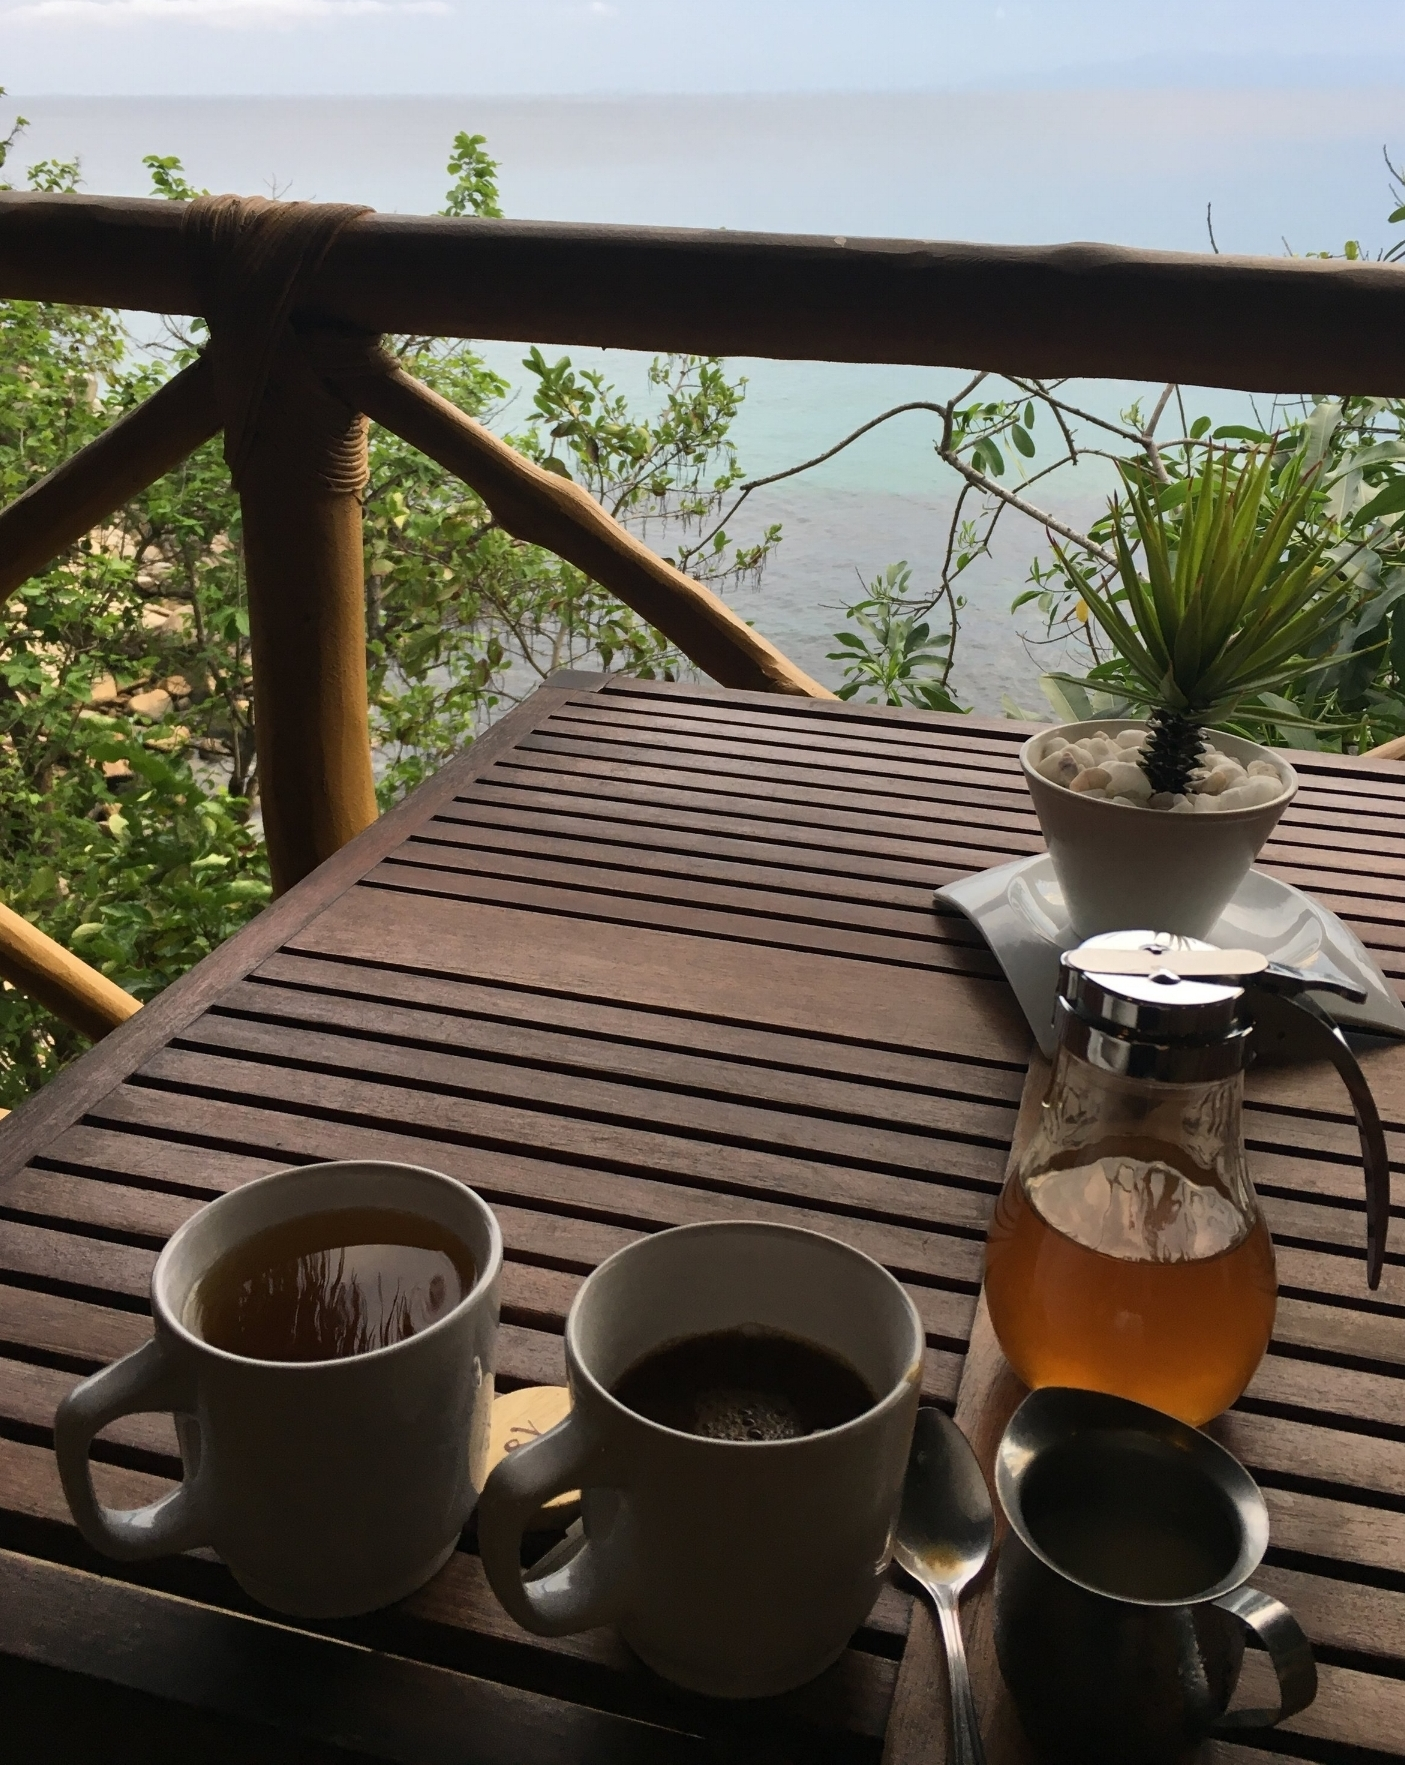 Coffee, fresh almond milk, local honey with this morning view